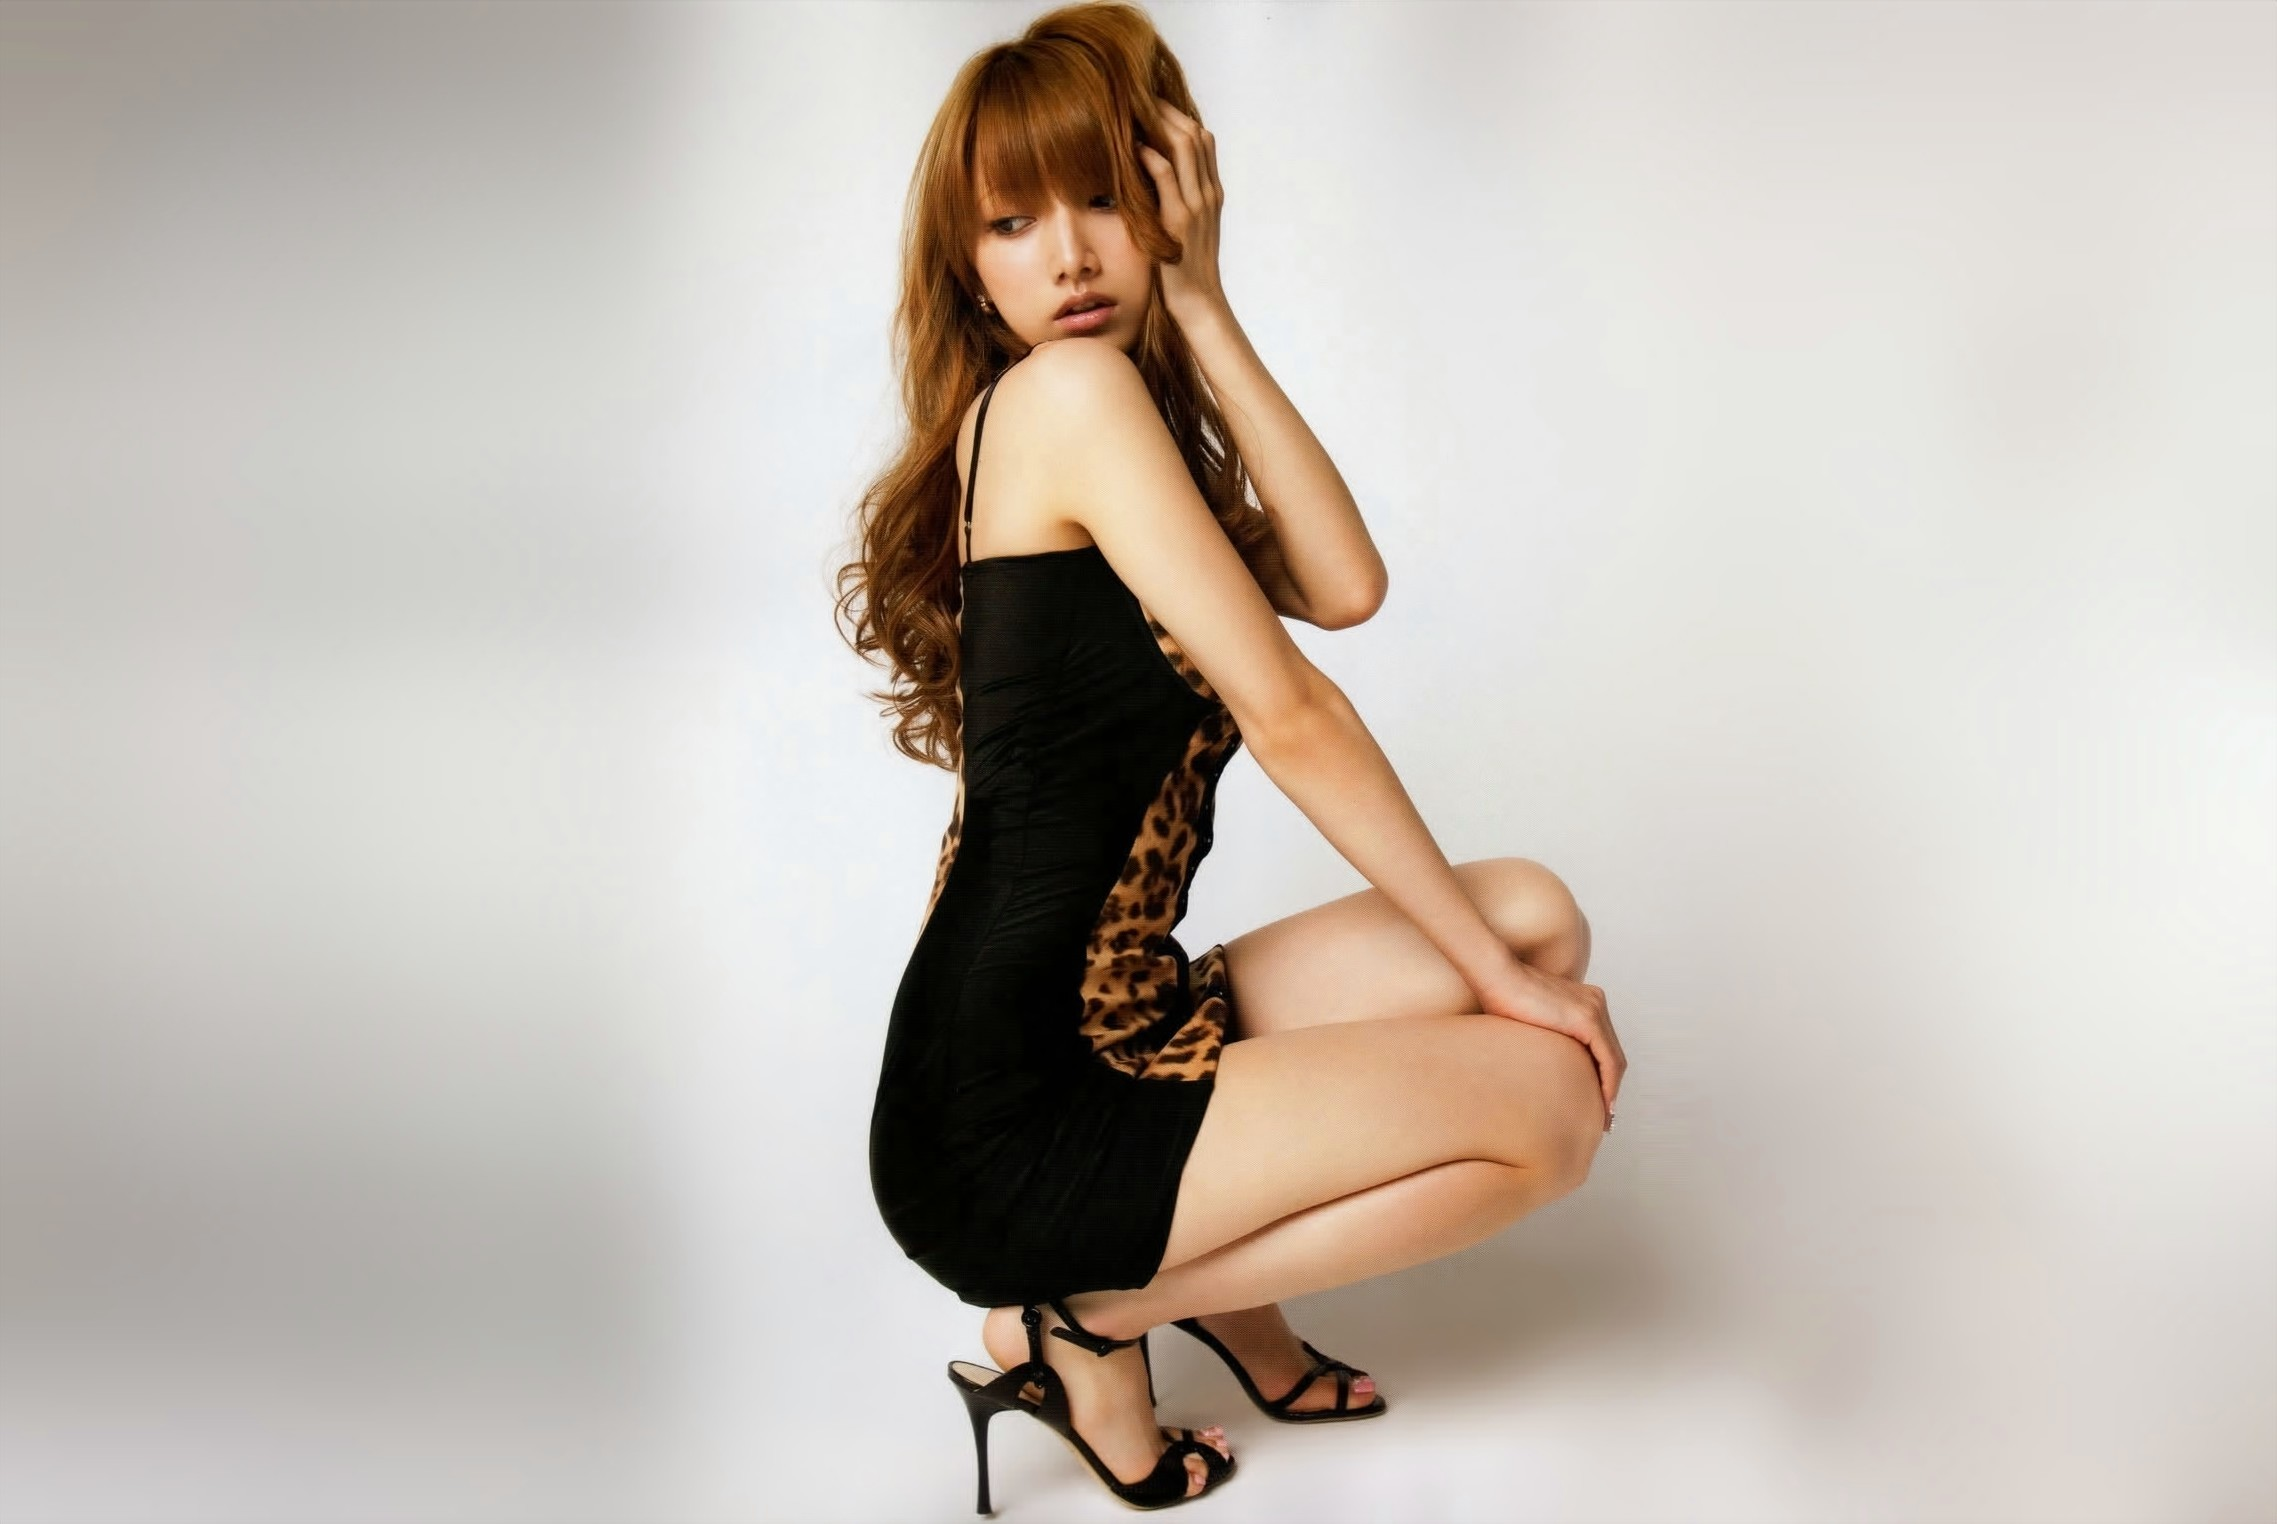 woman high heels asians HD Wallpaper